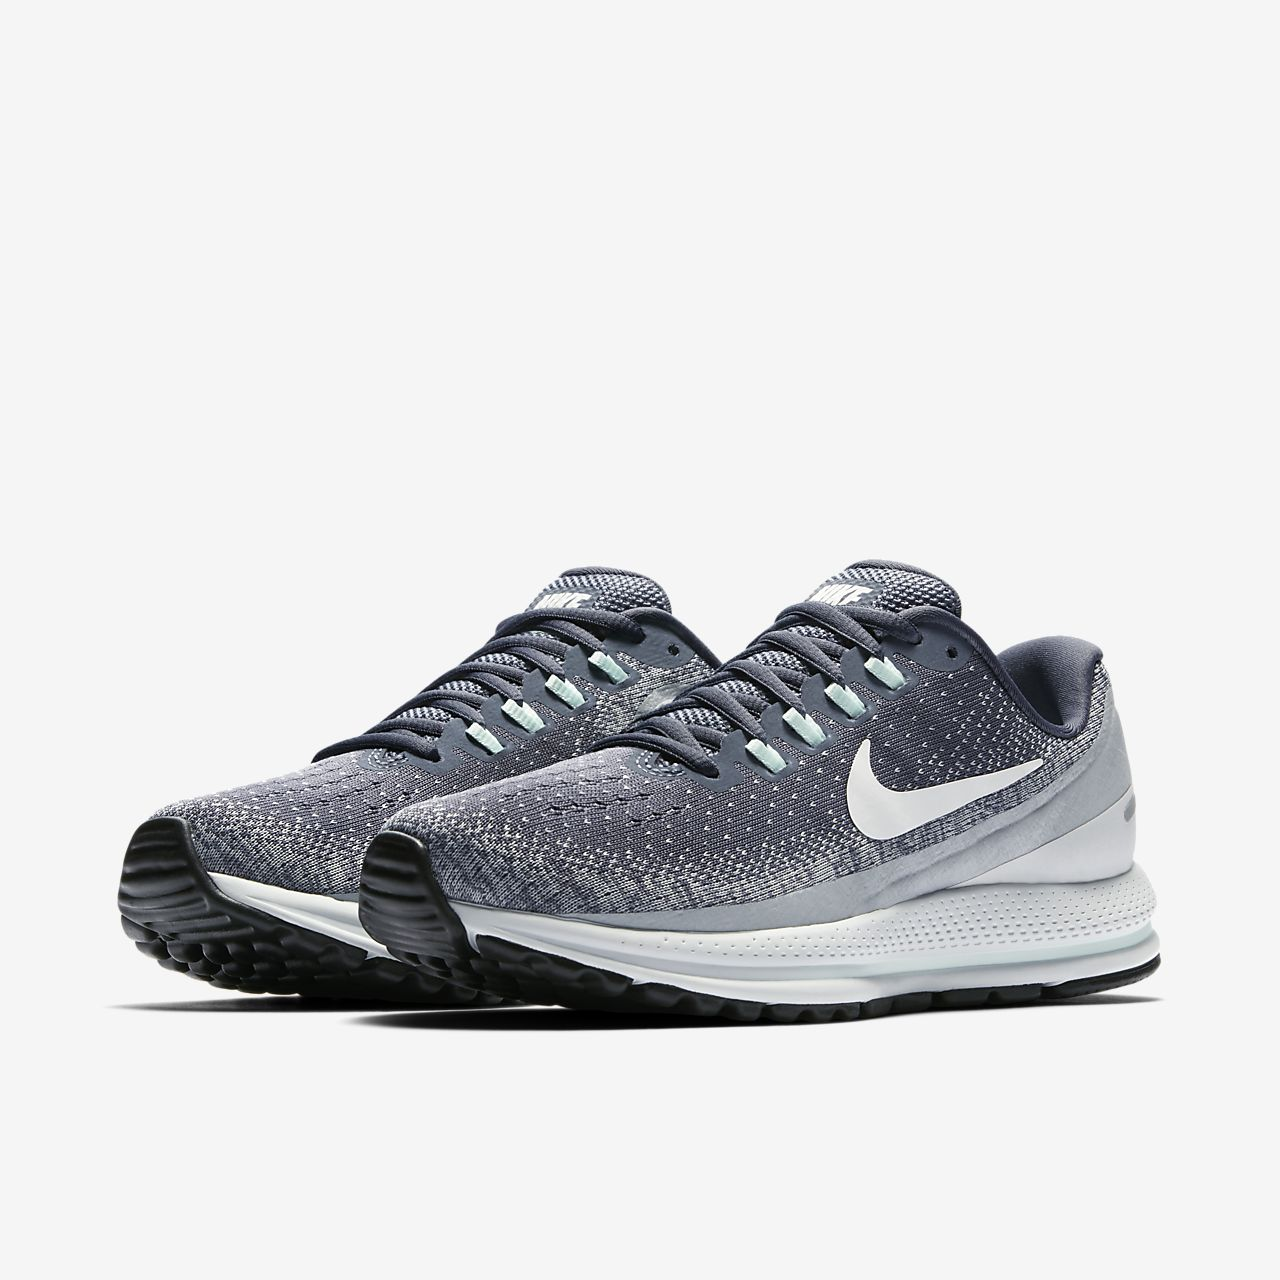 815549c965cd3 Nike Air Zoom Vomero 13 Women s Running Shoe. Nike.com GB